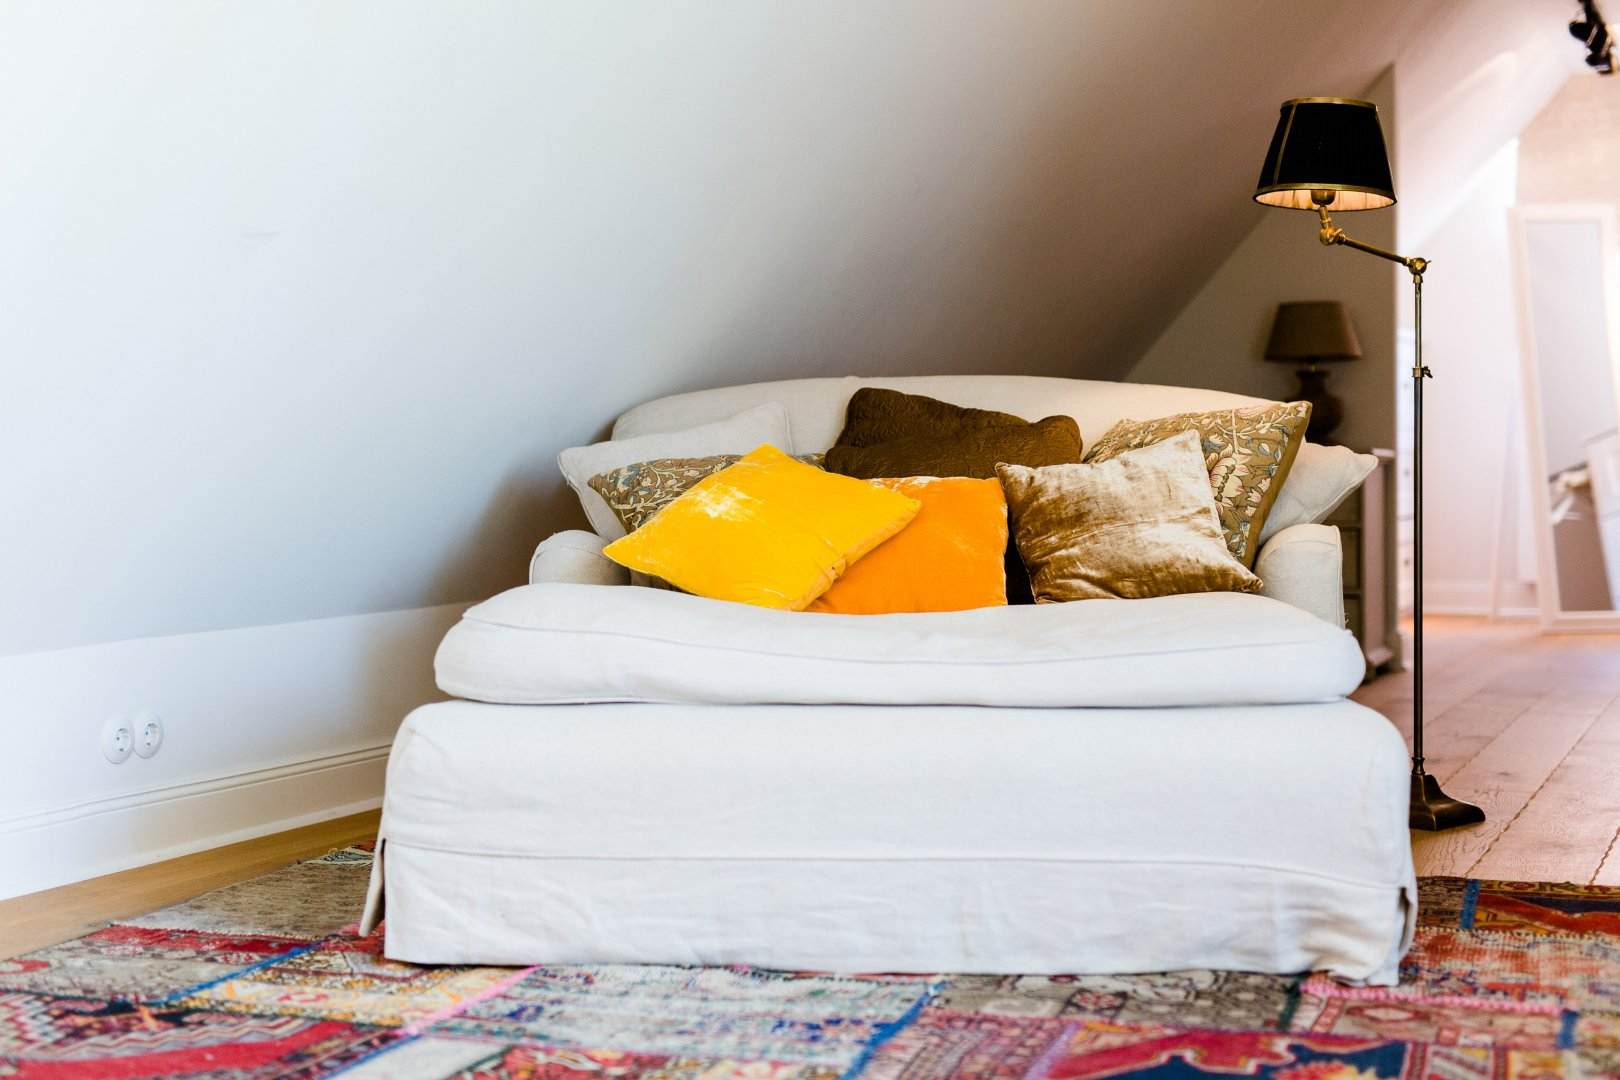 Room Furniture Yellow Bedroom Bed Property Interior design Orange Wall Bed sheet Home Comfort Living room House studio couch Bedding Couch Pillow Floor Textile Table Cushion Linens Slipcover Mattress Nightstand Boutique hotel Suite Building